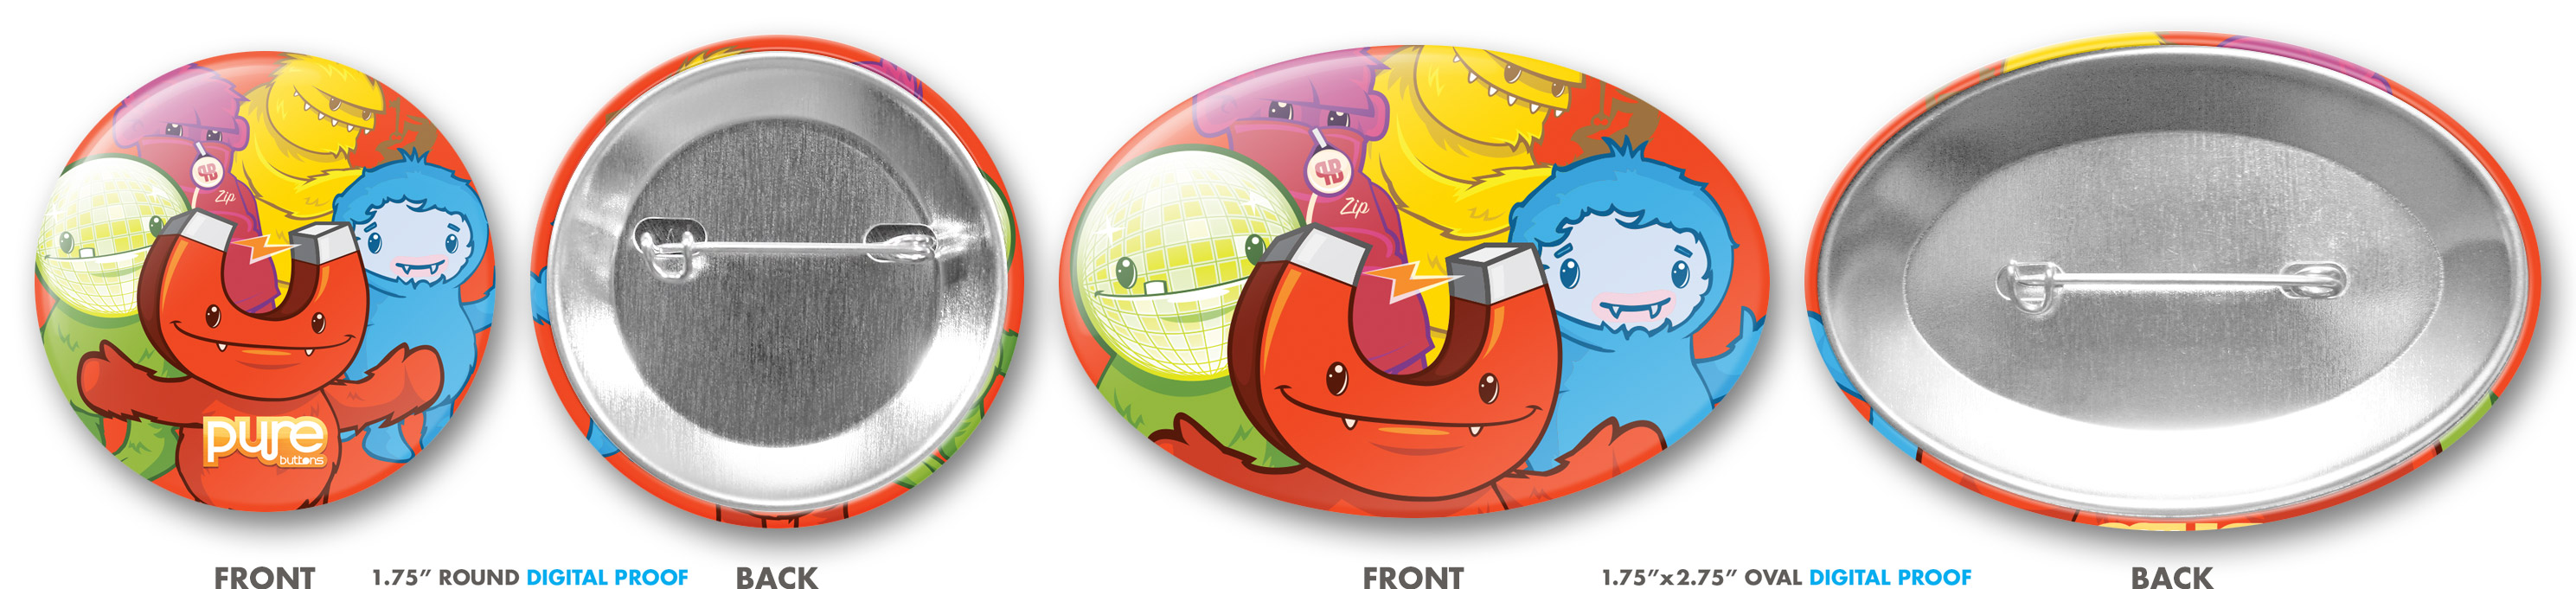 Digital Proofs